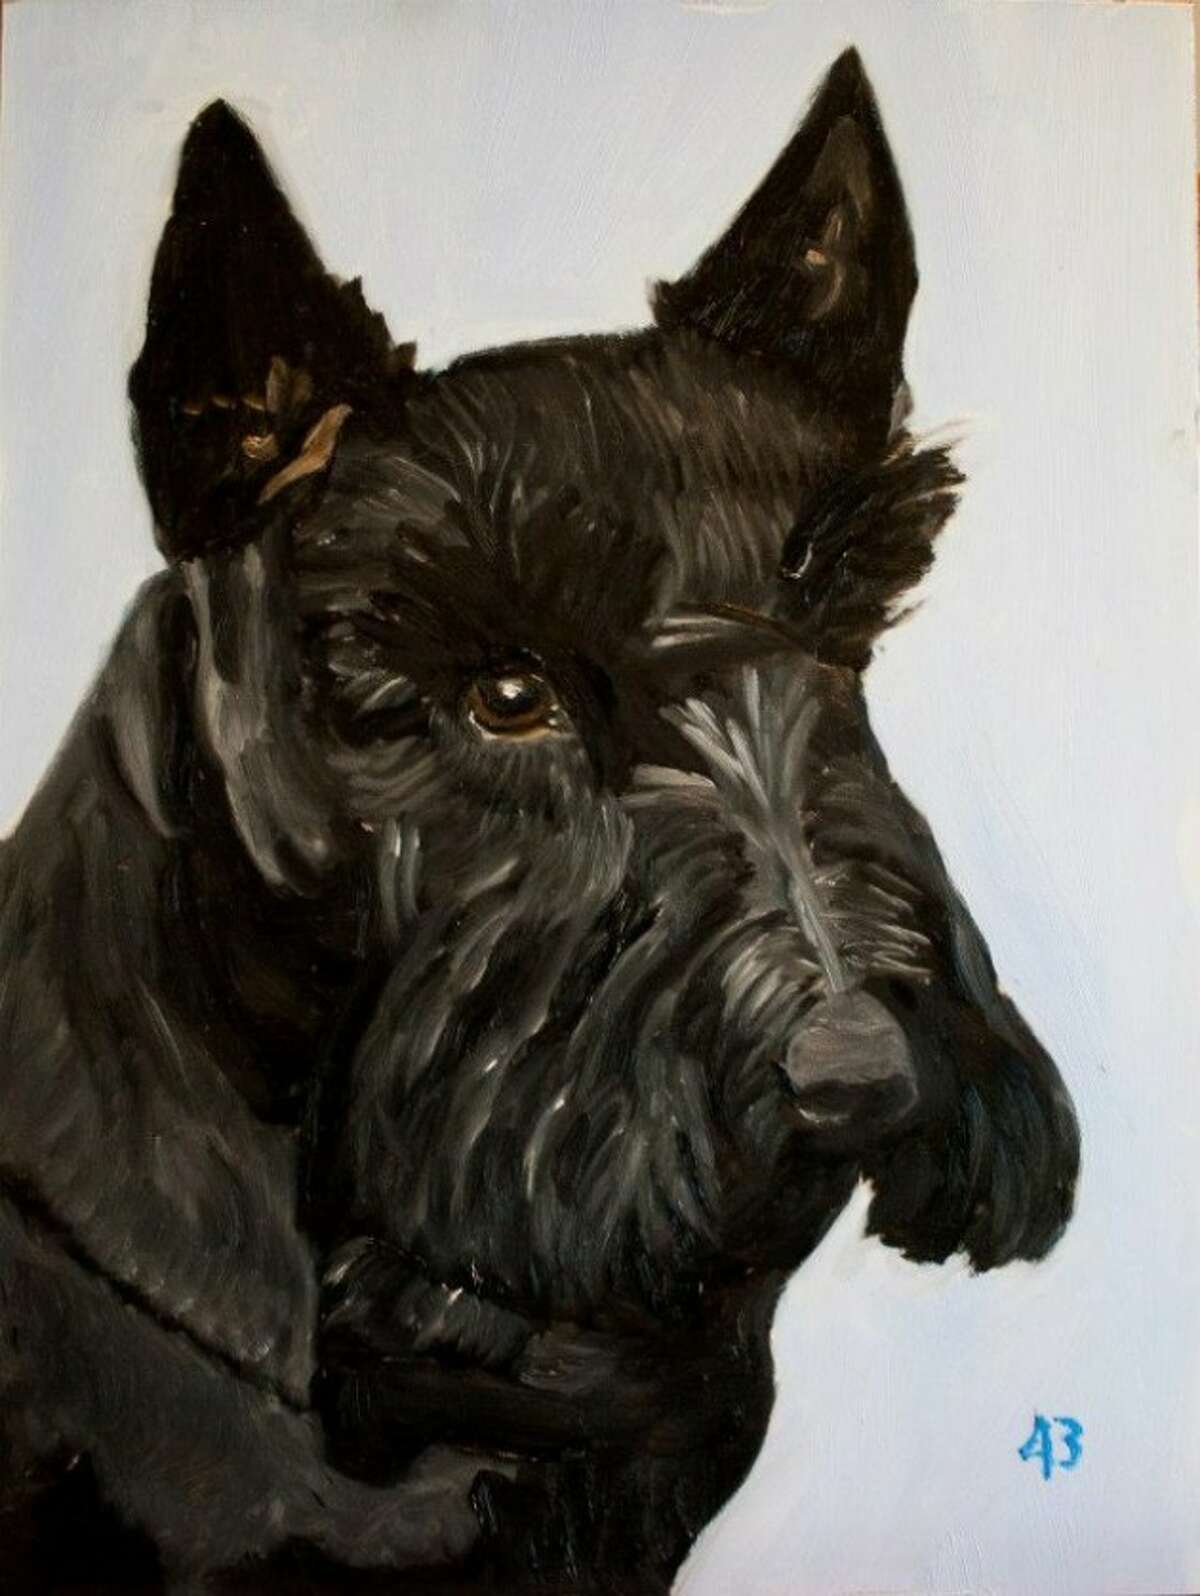 Congratulations to Barney, whose sophisticated visage has risen in our George W. Bush paintings bracket to be named Chron.com readers' favorite.